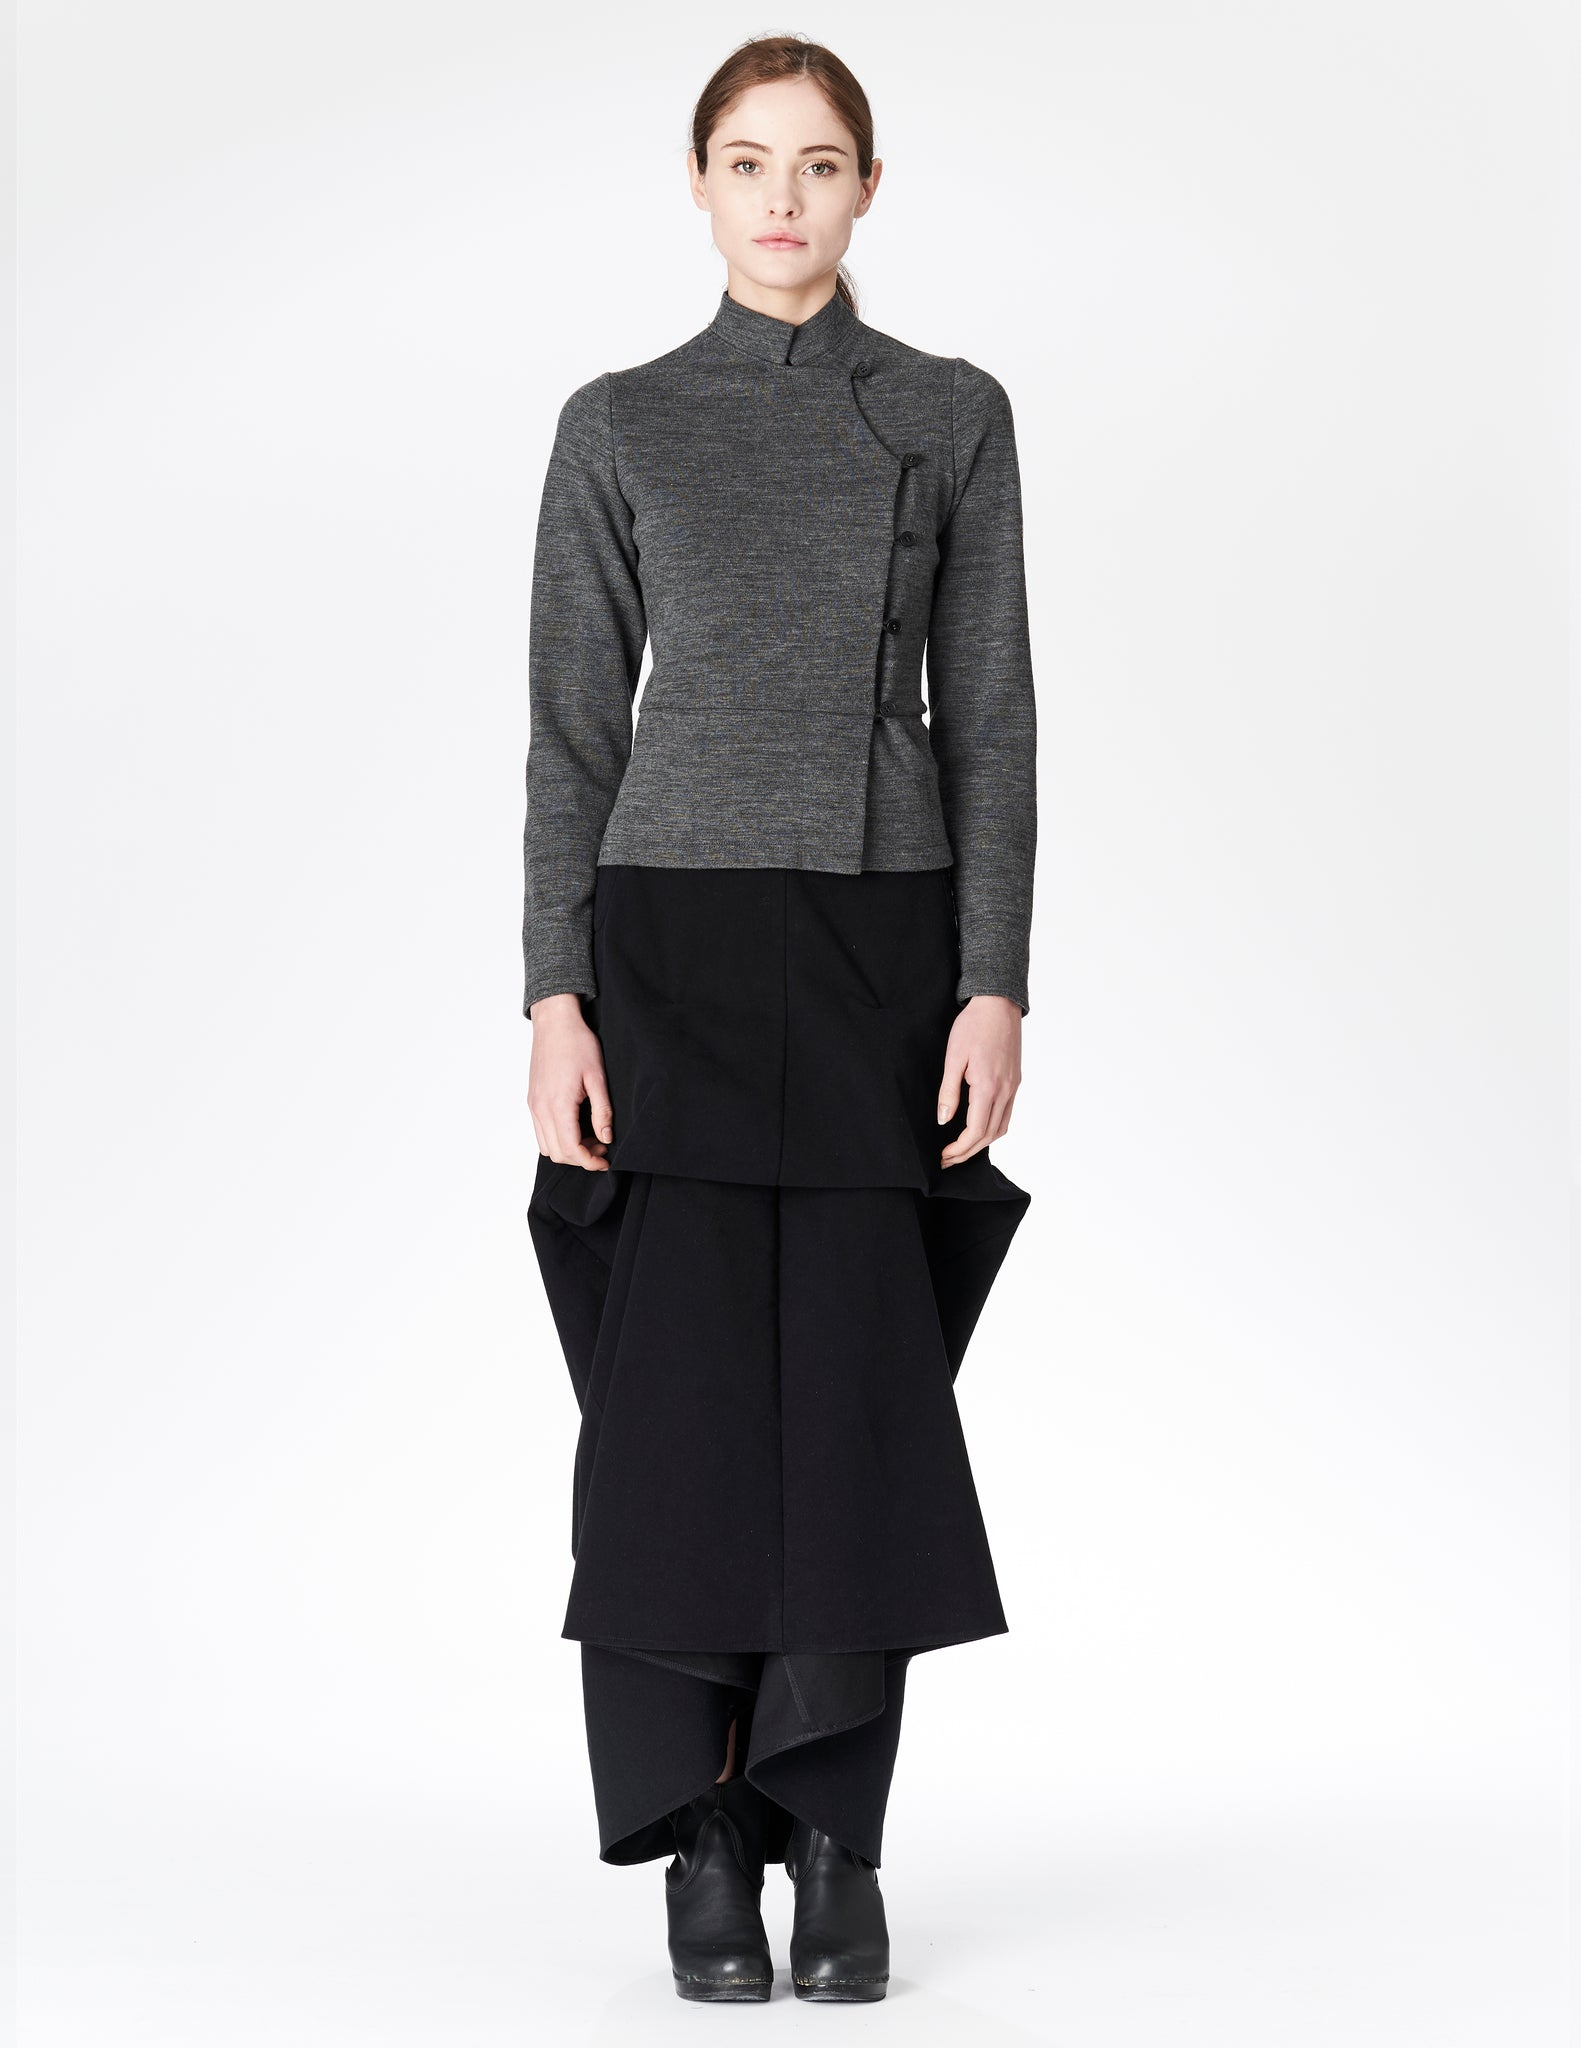 morgane le fay floor length moleskin skirt with interior ties to create front structured drapes.